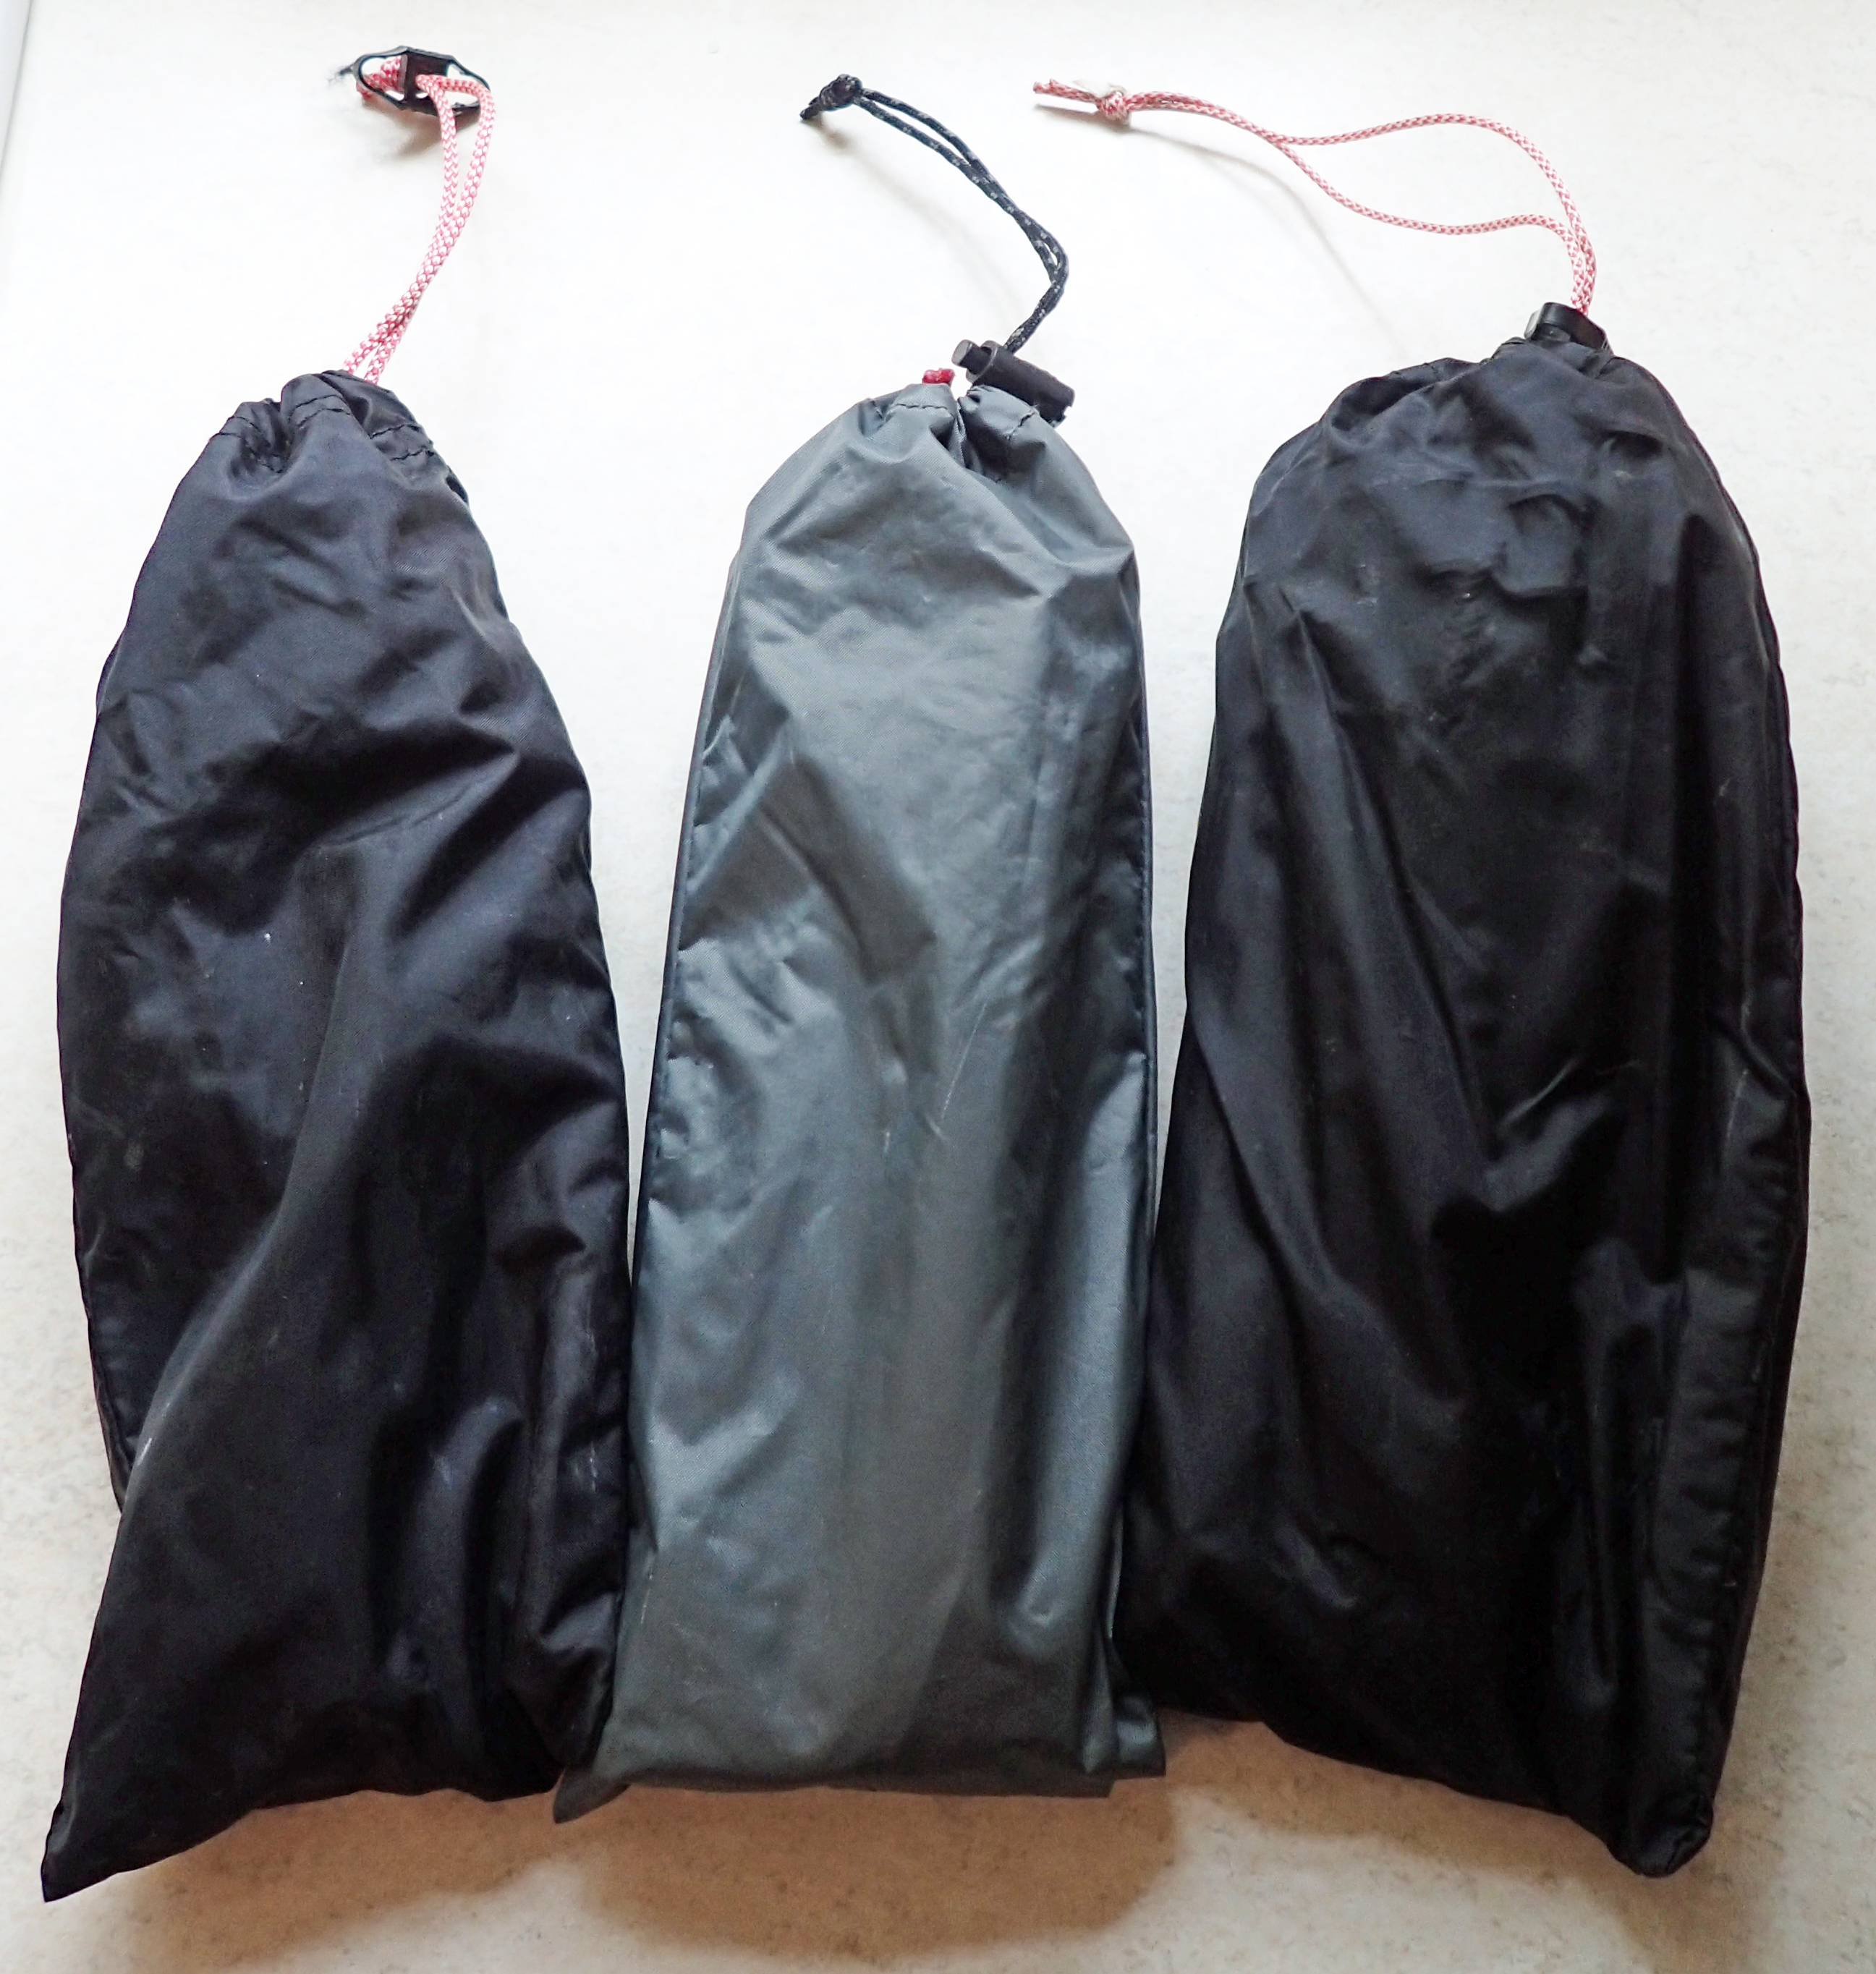 Peg bags & A few grams here a few grams thereu2026 in search of the perfect tent ...